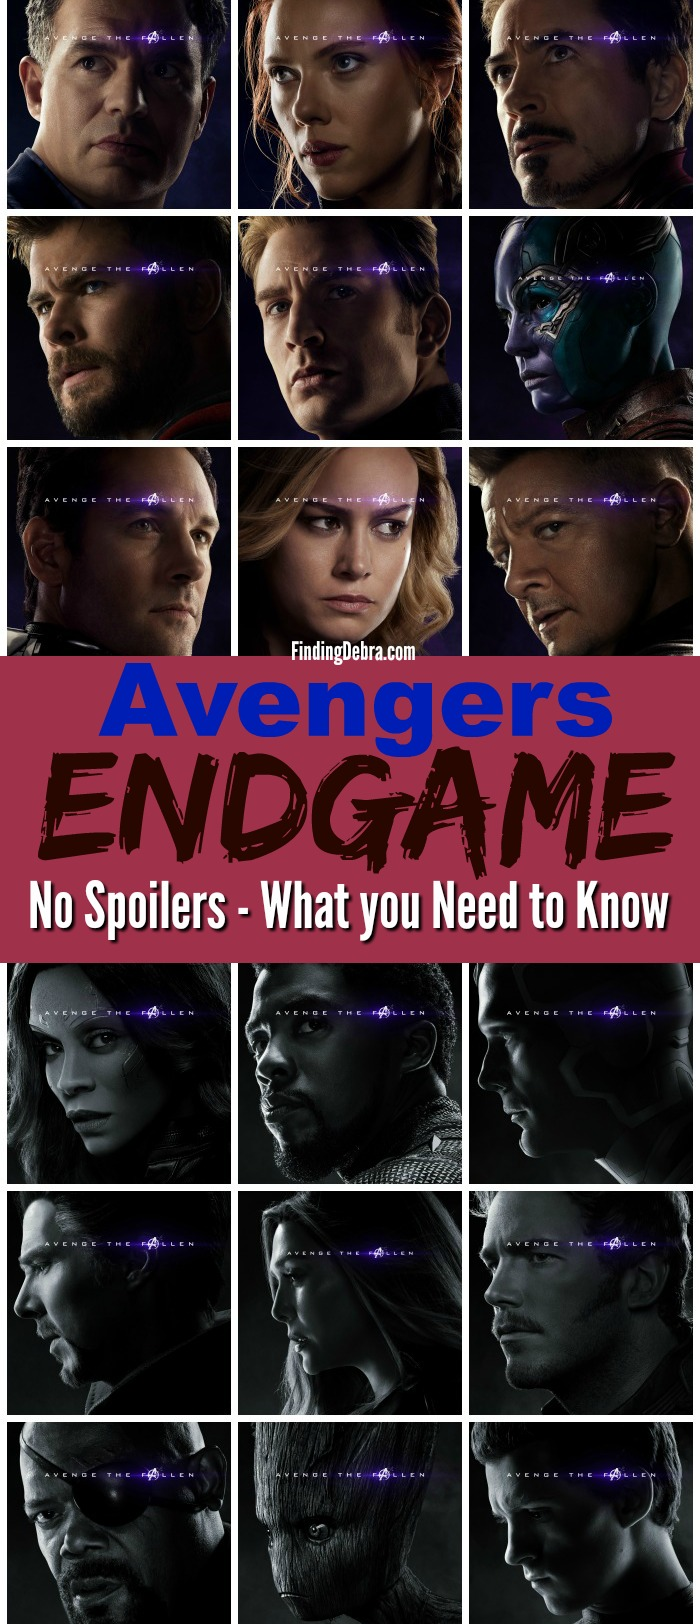 Avengers Endgame Parent Review - No Spoilers - what you need to know 1